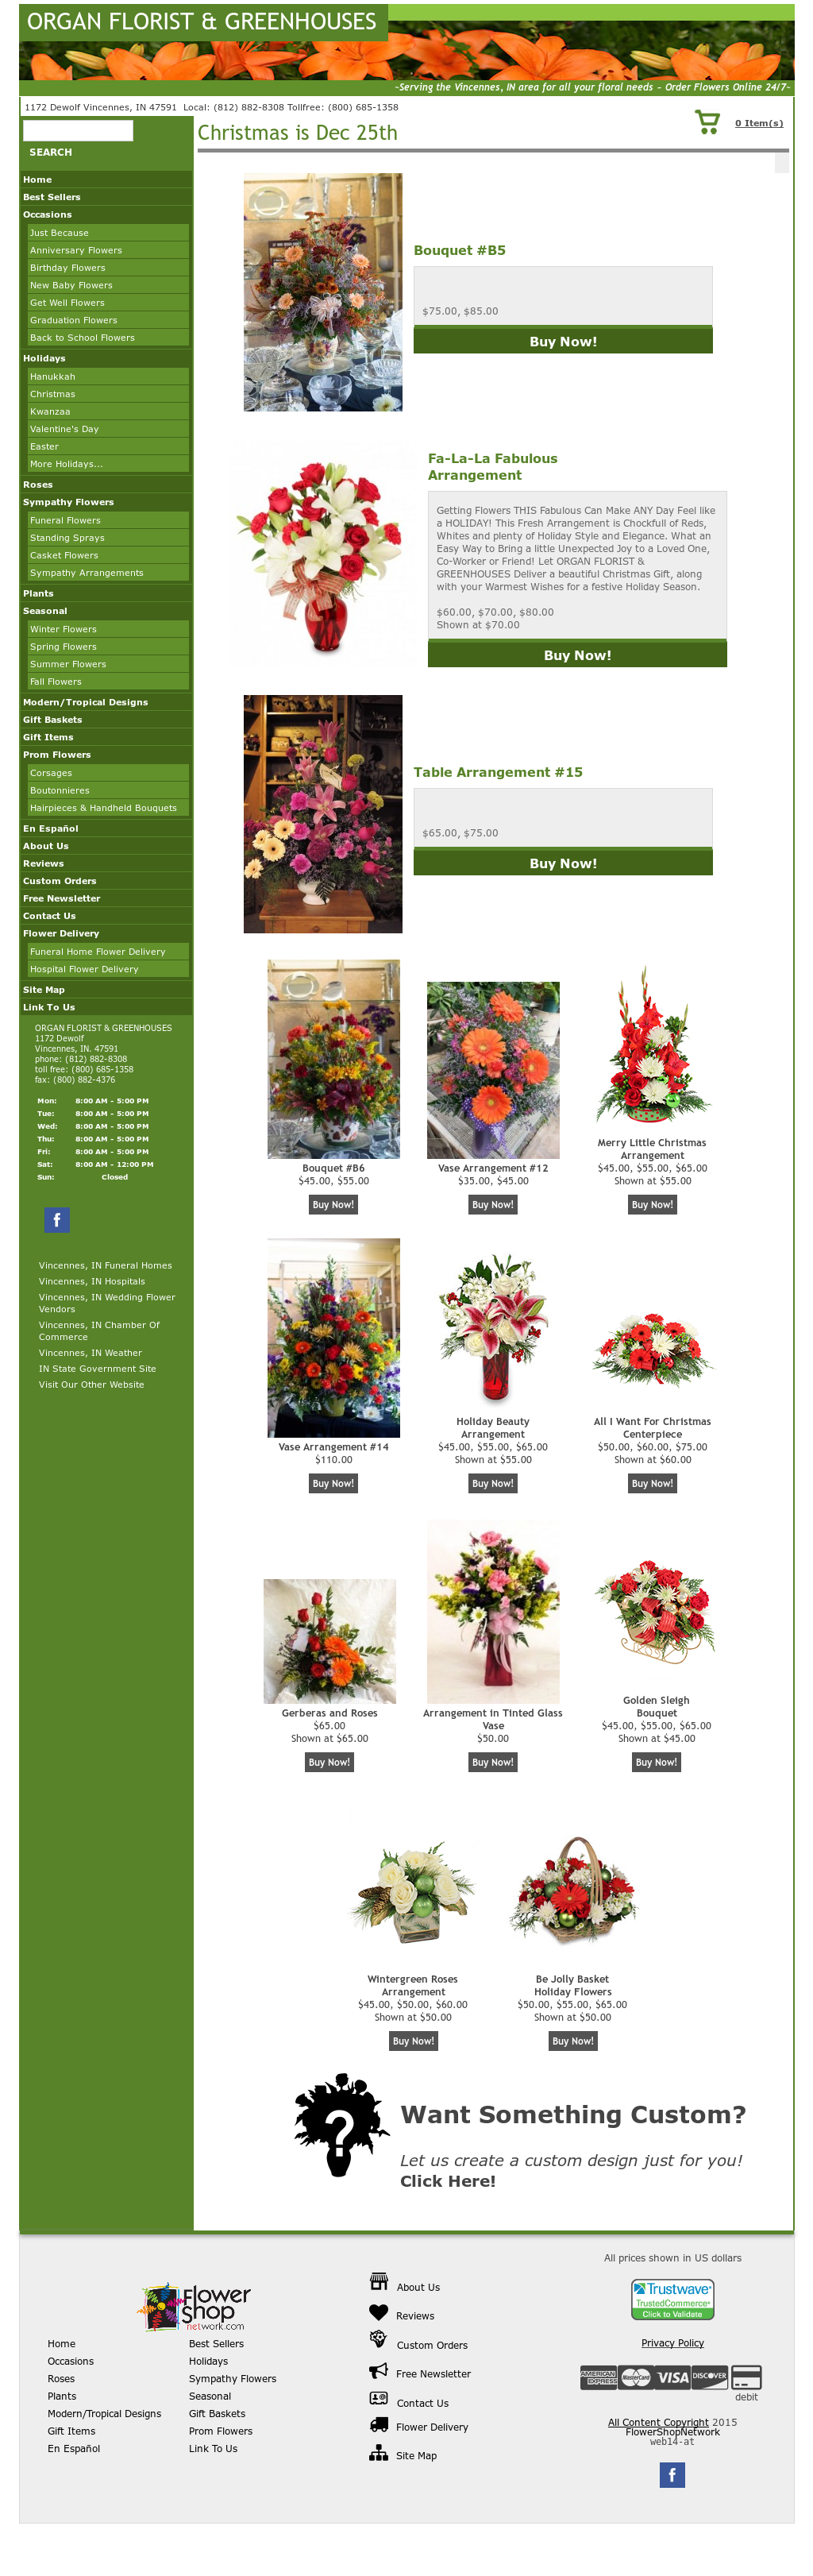 Organ Florist & Greenhouses Competitors, Revenue and Employees